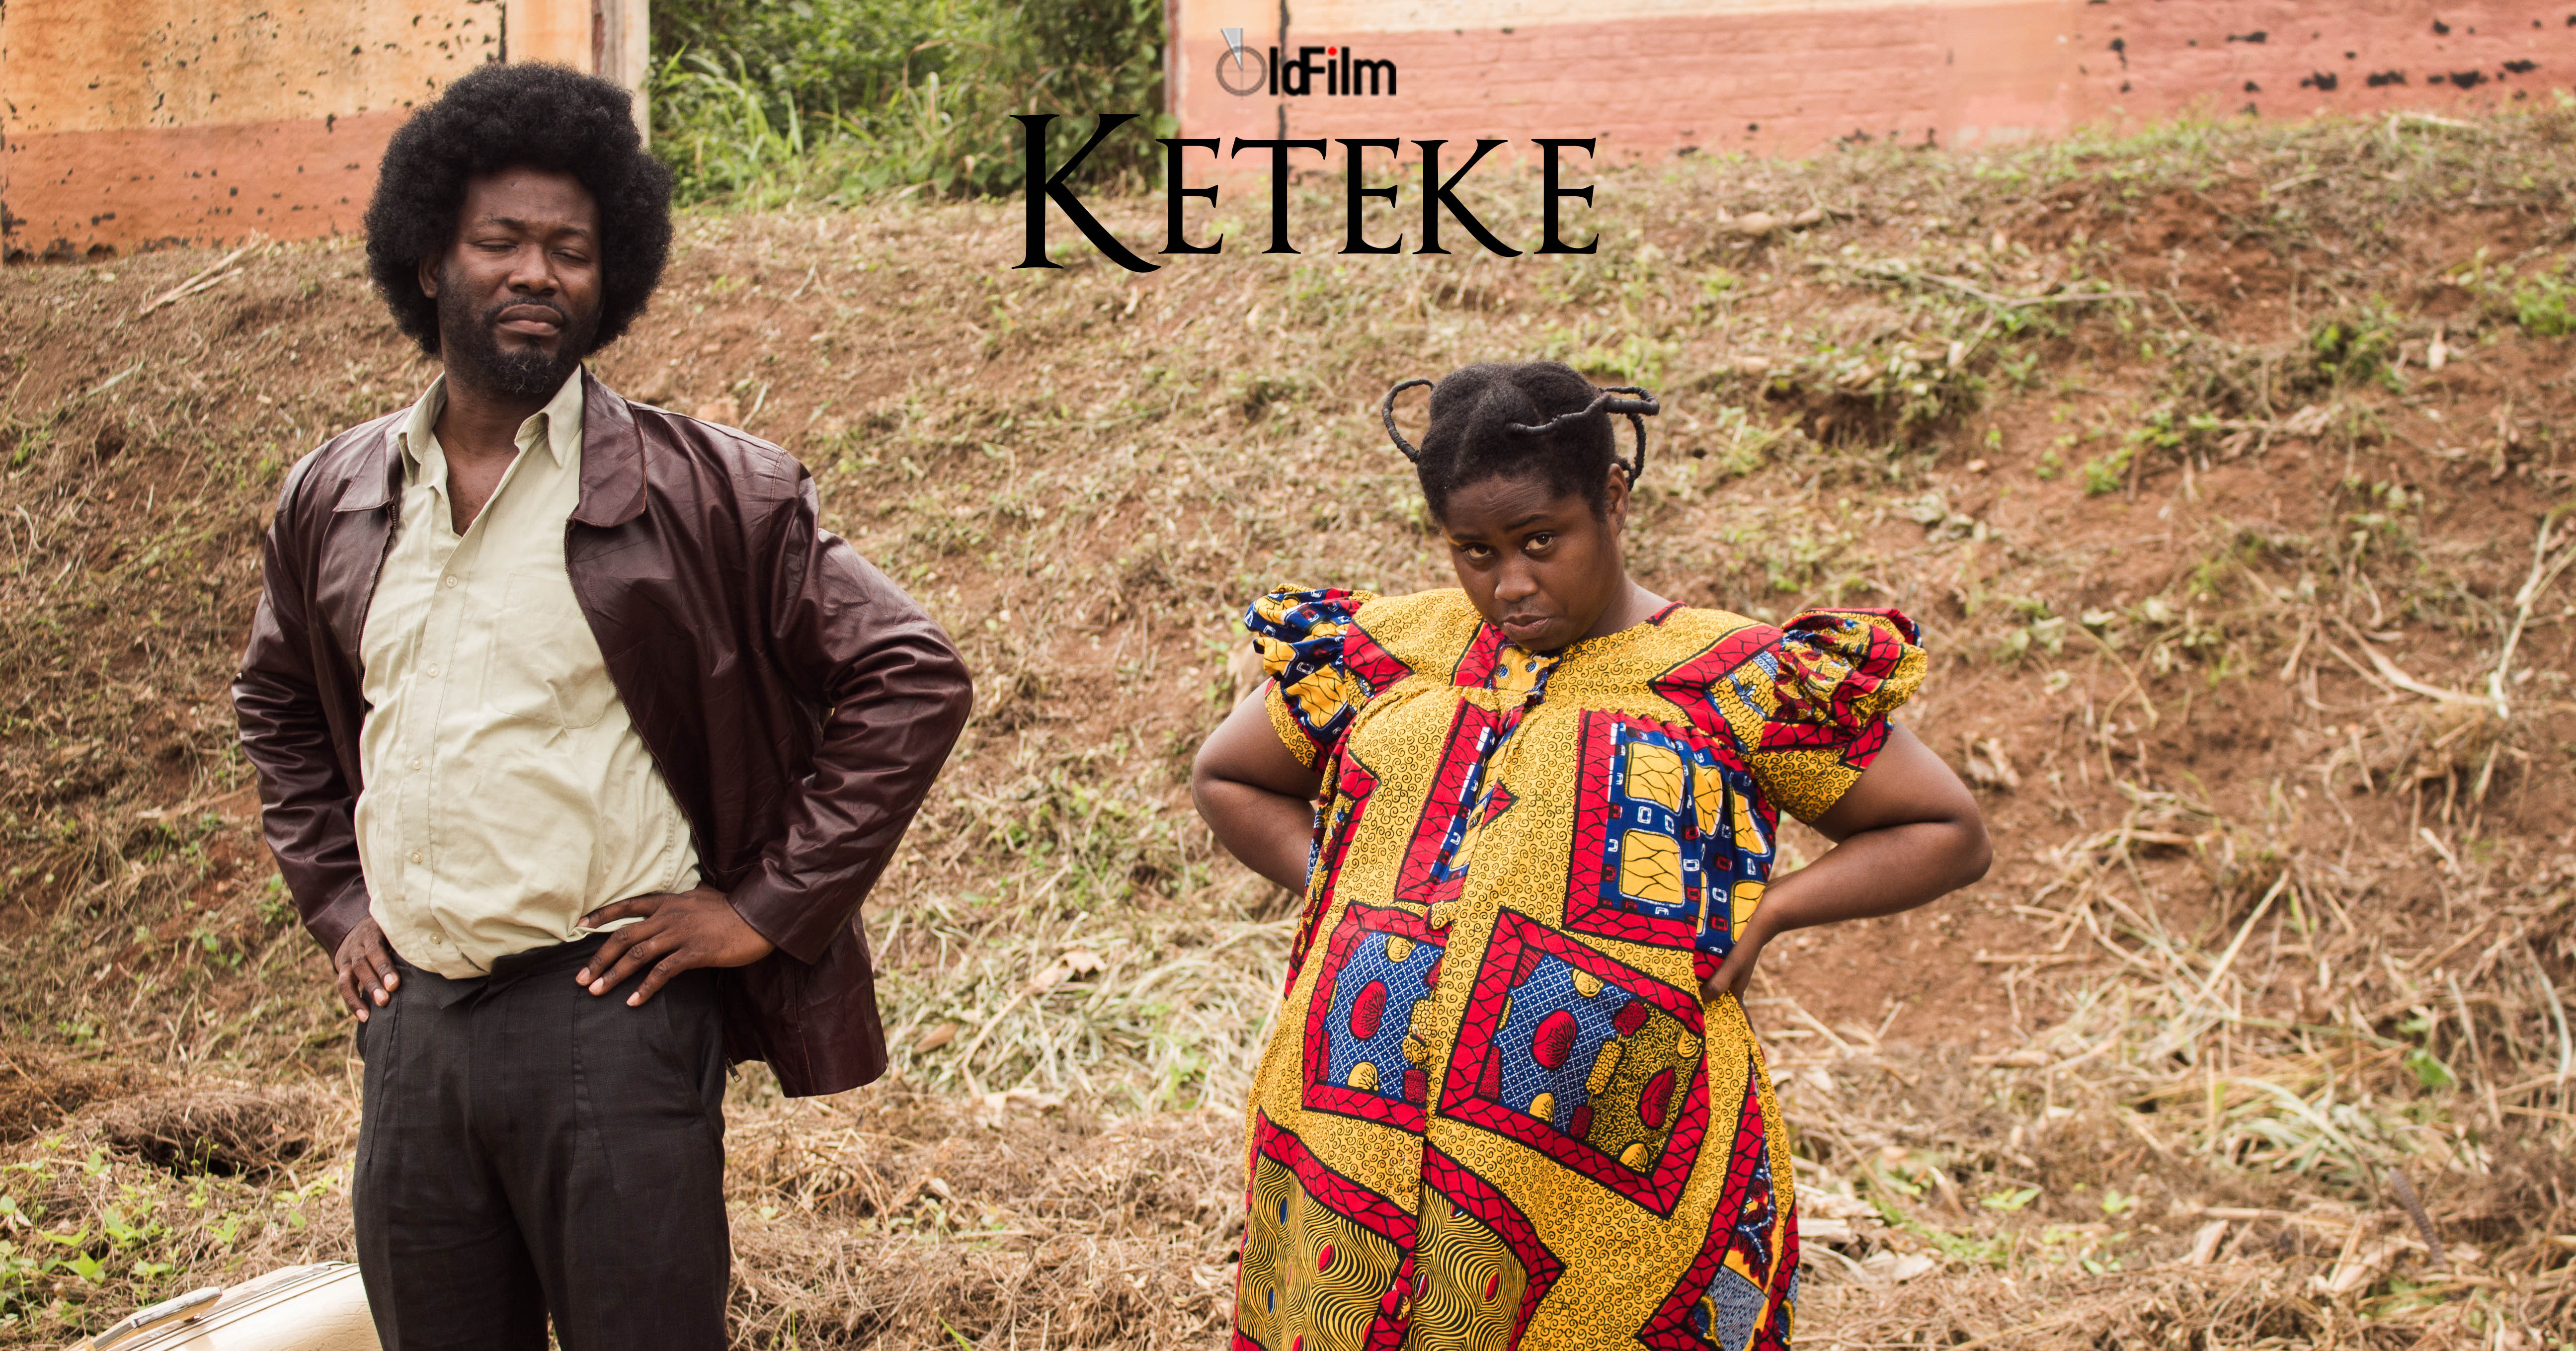 Ghana's 'Keteke' Nominated Along With Films From 15 African Countries For 2019 FESPACO Awards